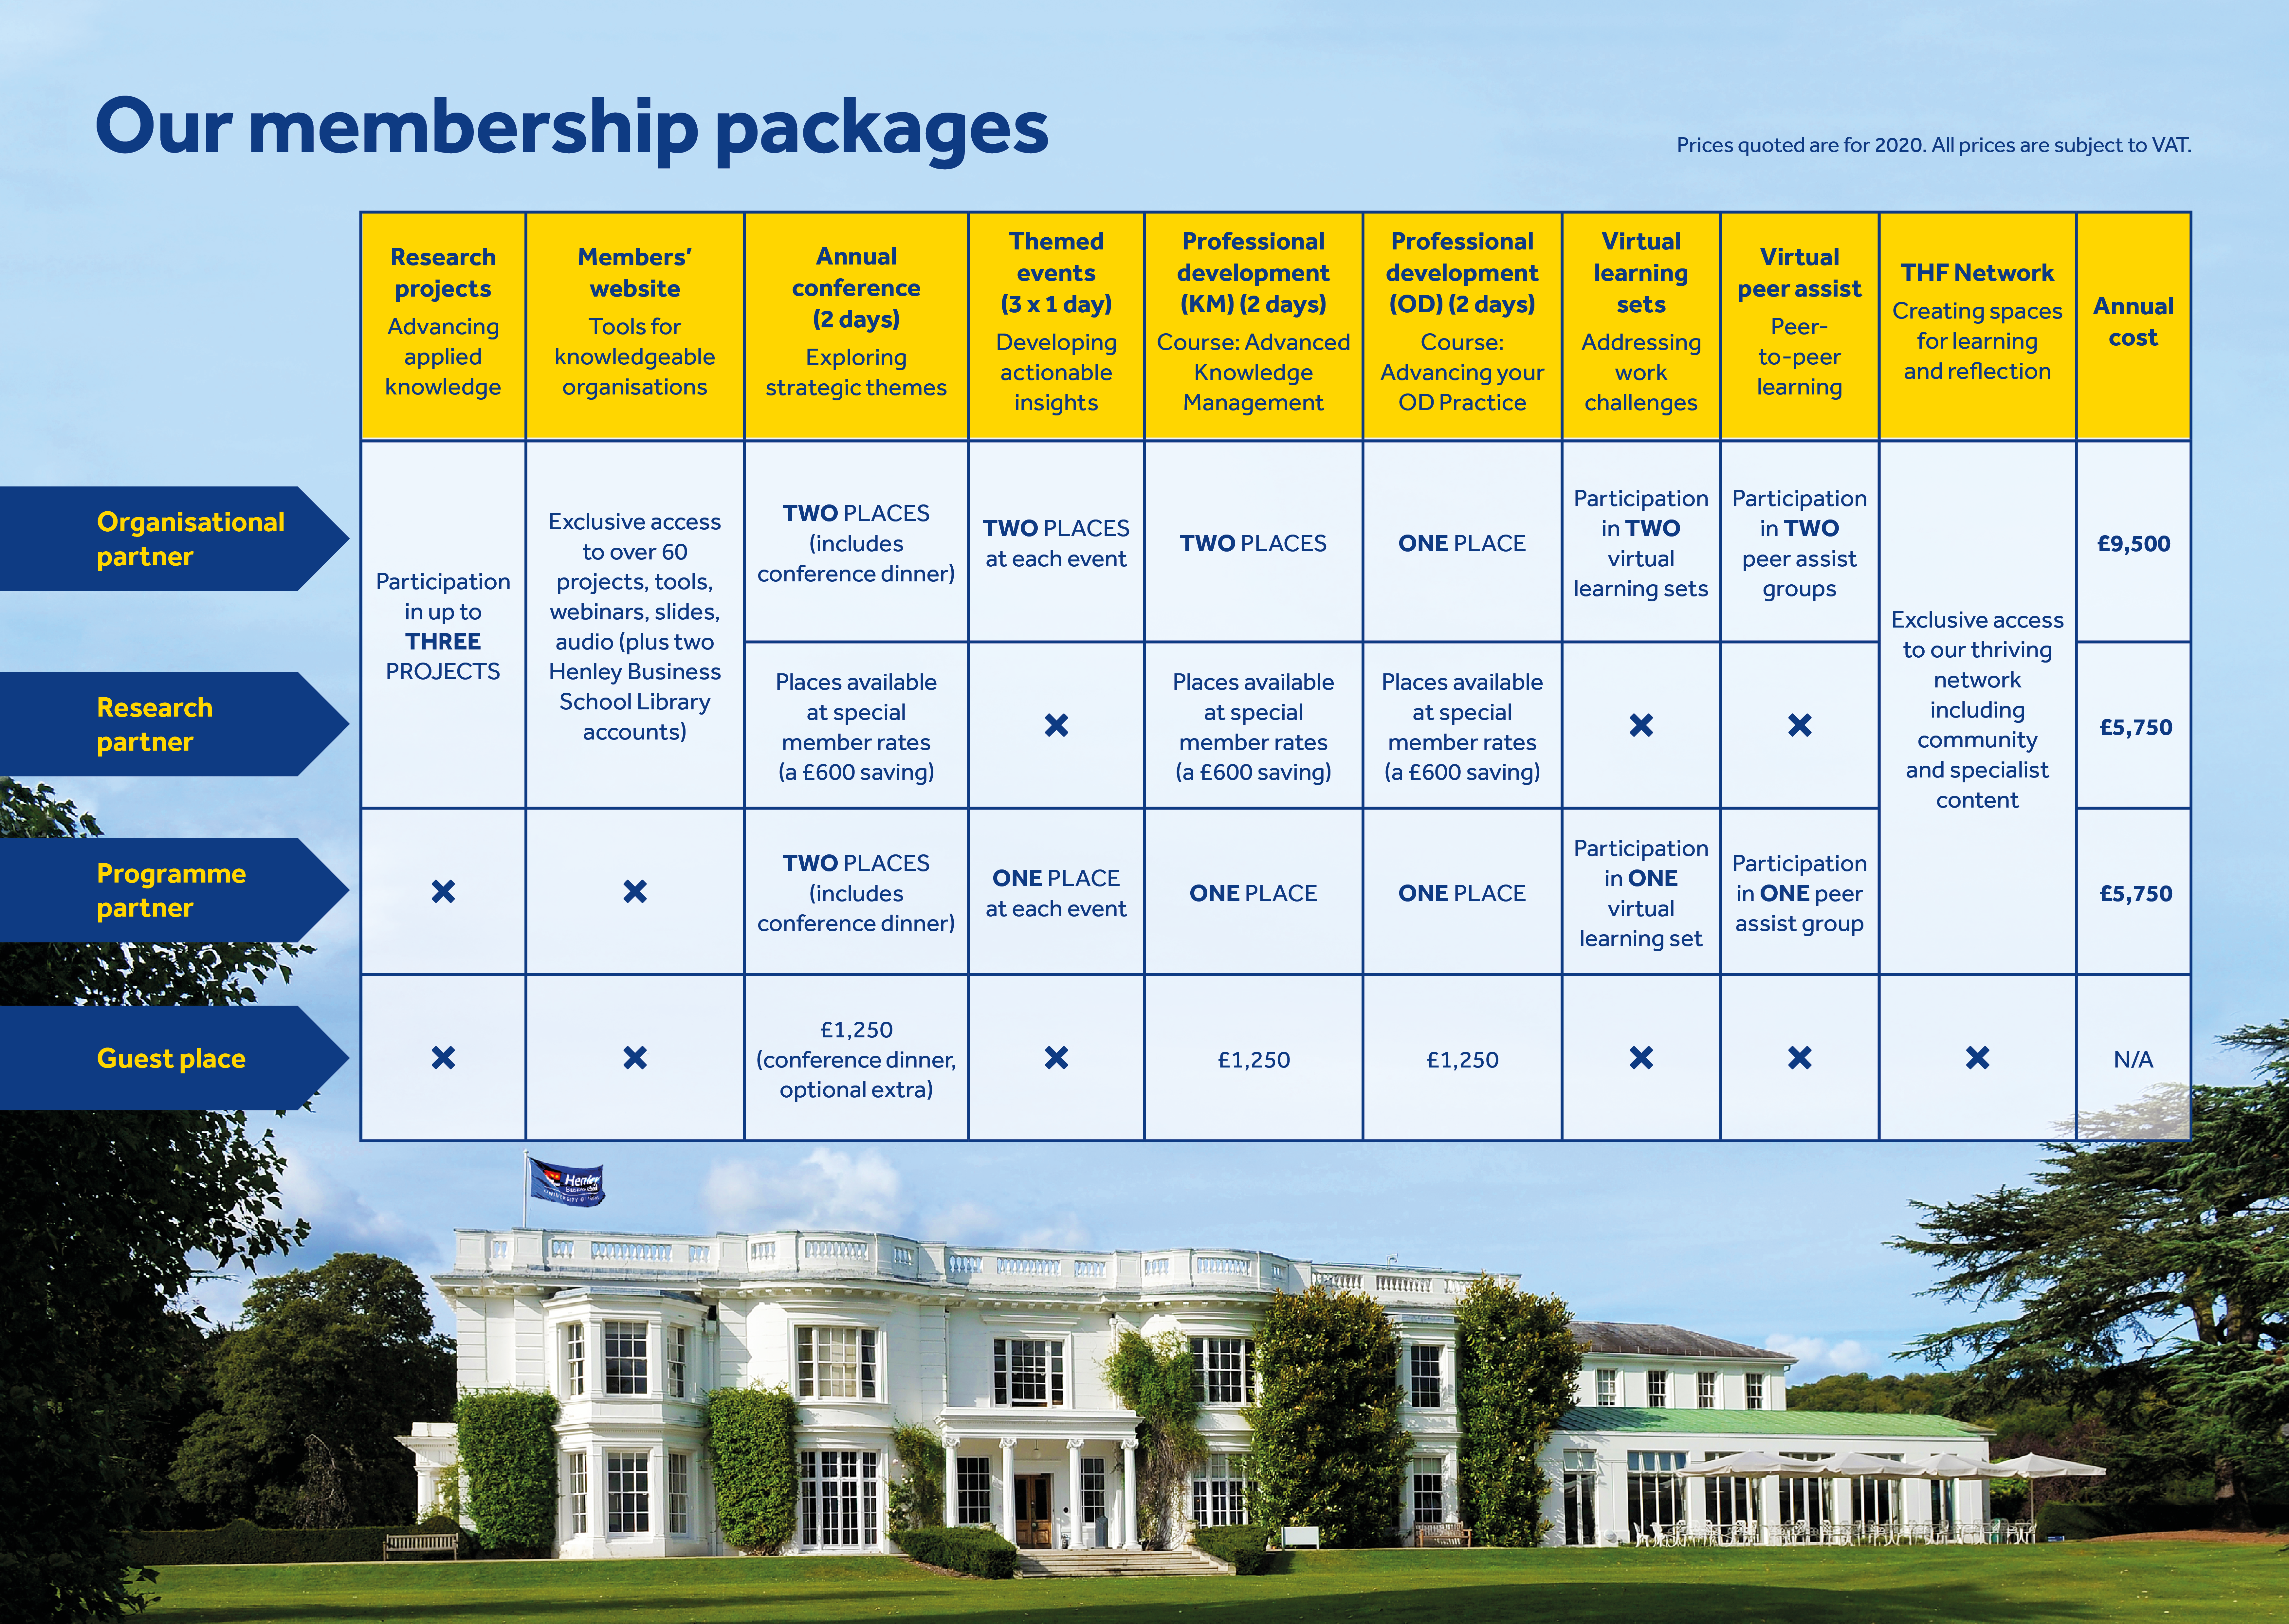 Our-membership-packages-v2-002.png?mtime=20200507095213#asset:134196